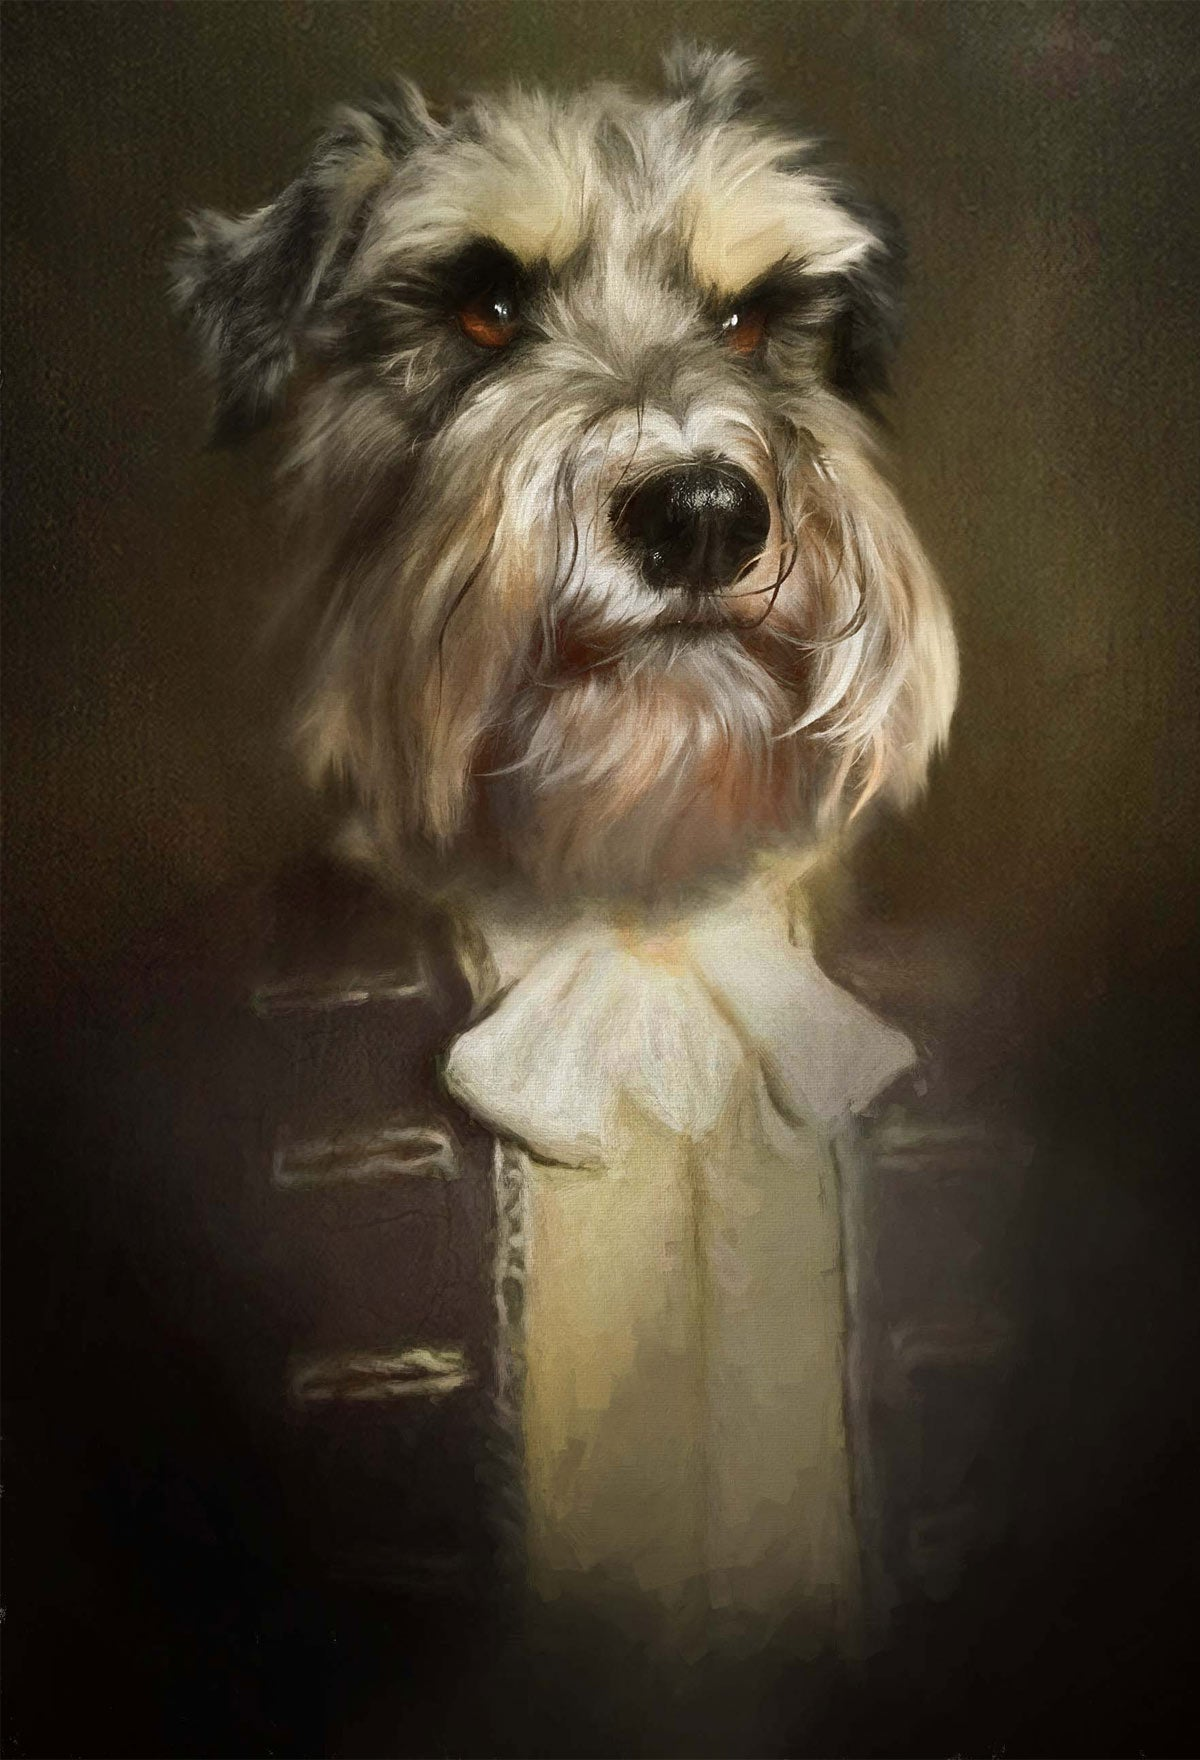 Sir Paws Pet Portrait at Turner & Walker